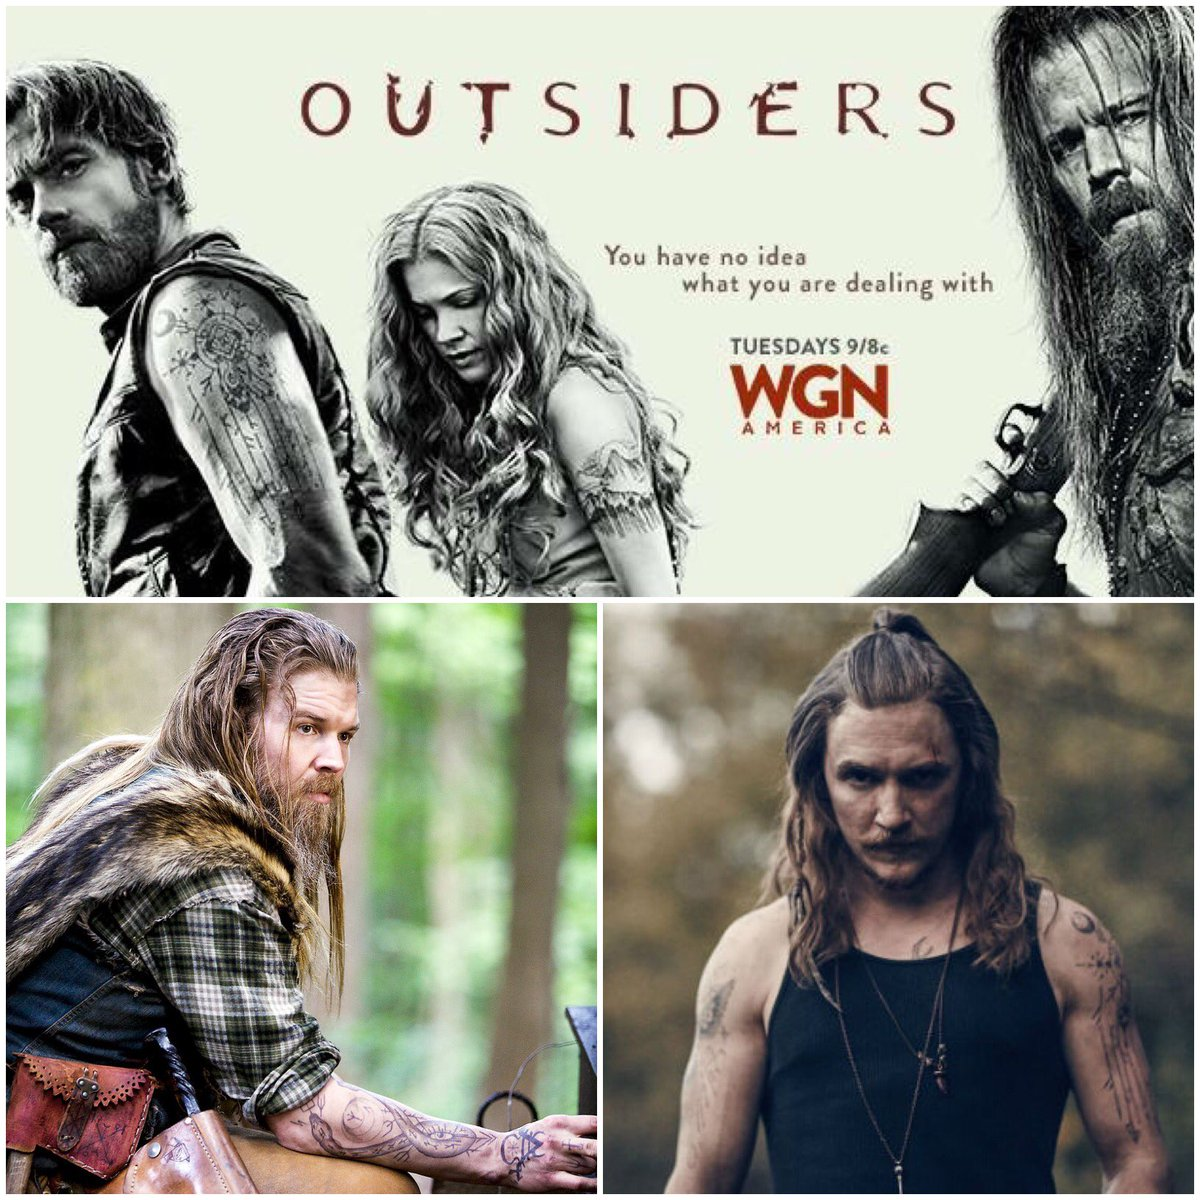 As long as I don't wash away. Today I chat with @RamboDonkeyKong & @KyleGallner for @TheVRO!! #OutsidersWGN https://t.co/OQccCUi74B